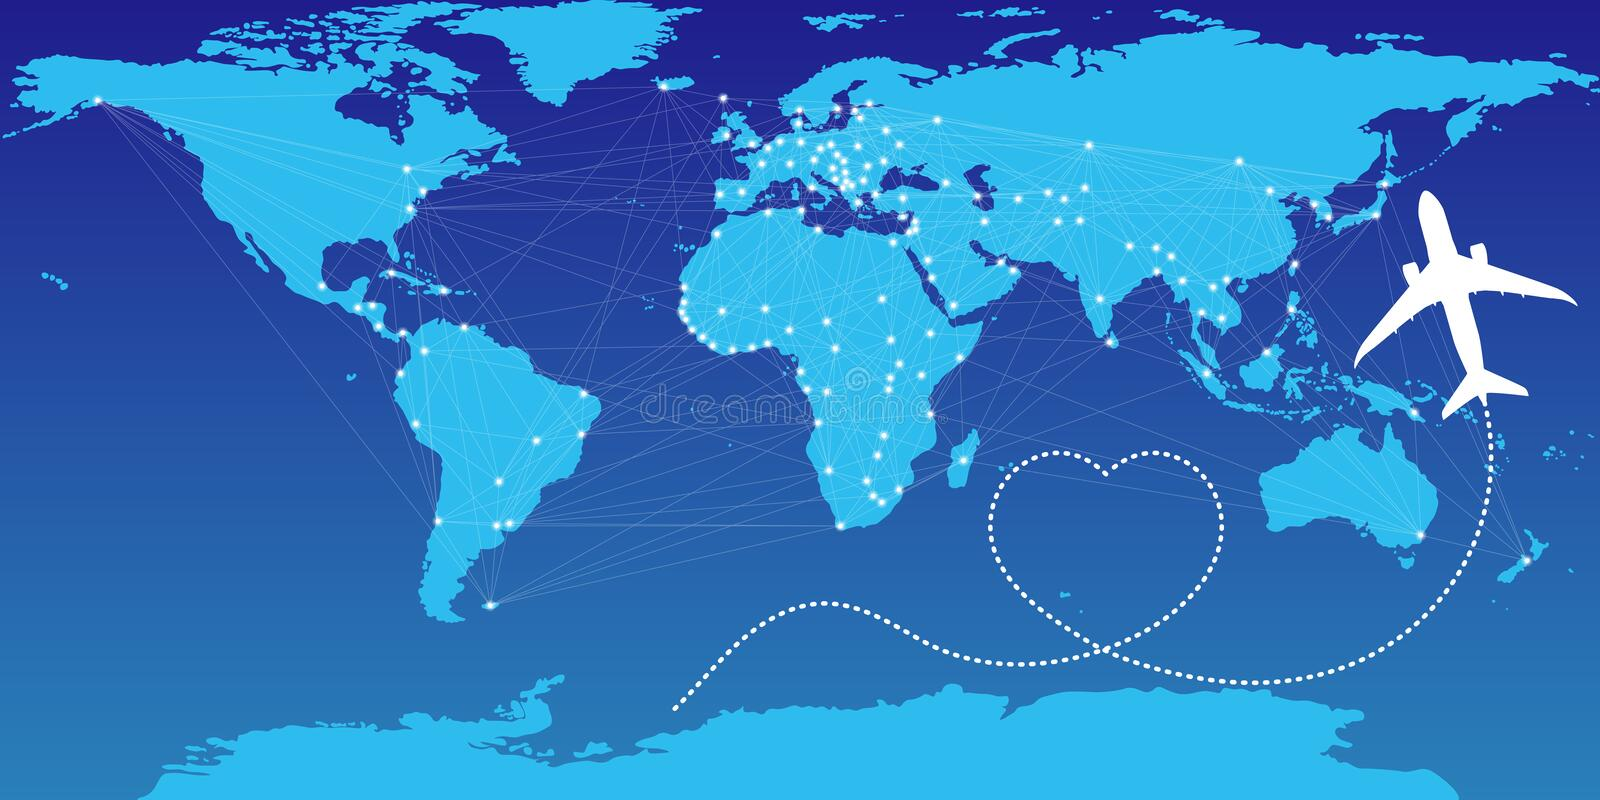 Love travel concept illustration in vector. Airplane flying and leave a white dashed trace line. Eps10 royalty free illustration